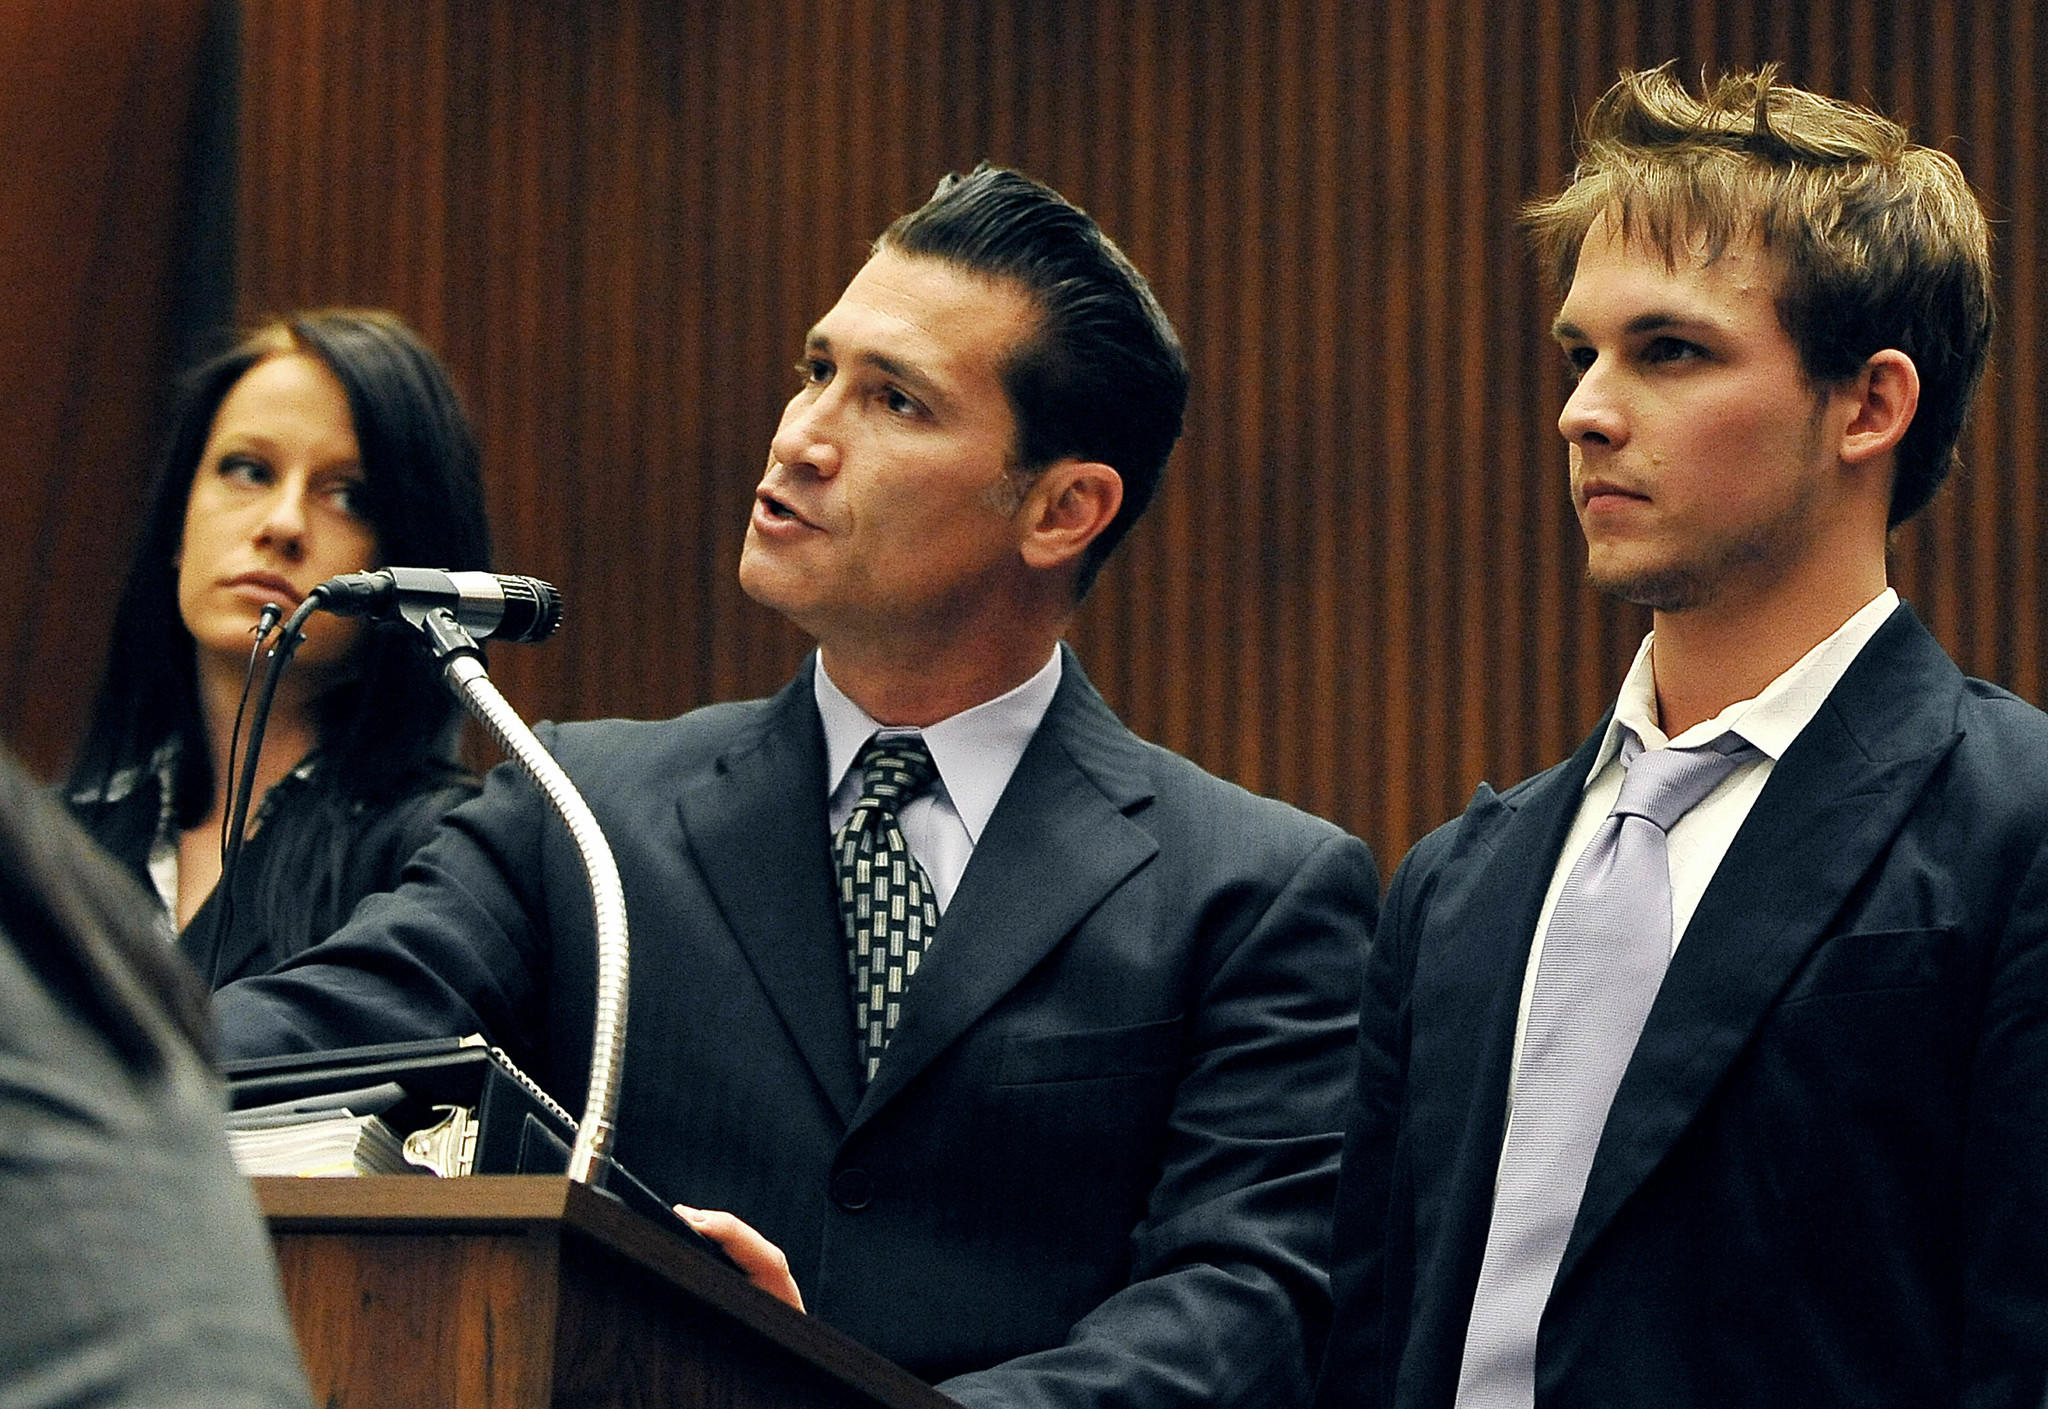 Nicholas Frank Prugo, right, listens as his attorney Sean Erenstoft addresses the court in 2009.